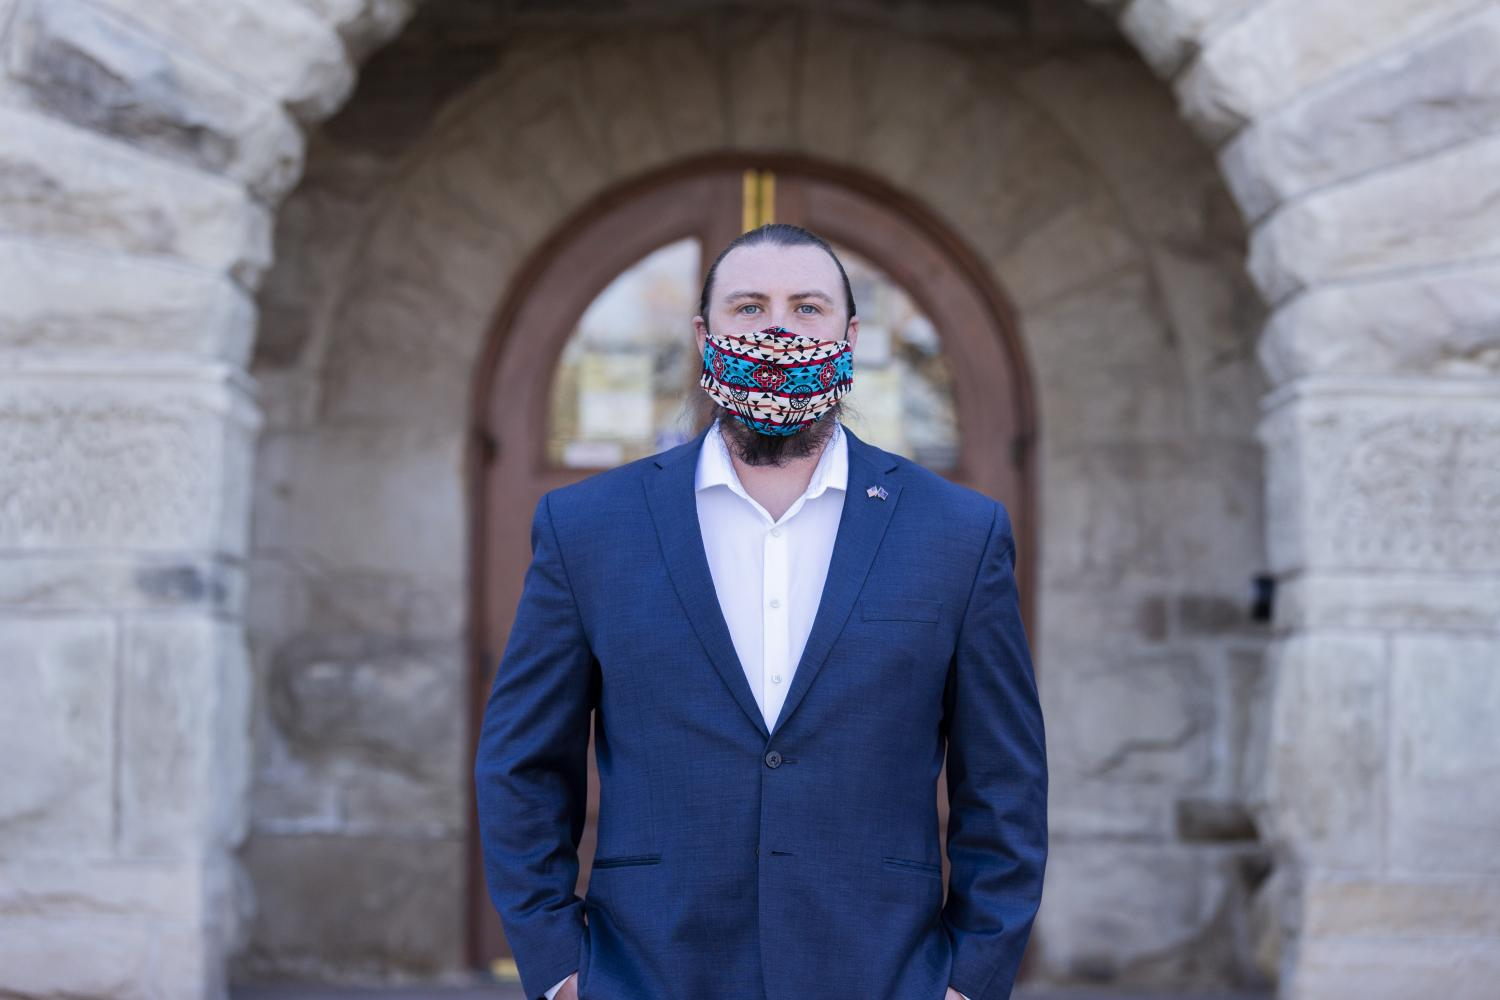 Carlton Quinn Shield Chief Gover standing in a suit and mask in front of a building on campus